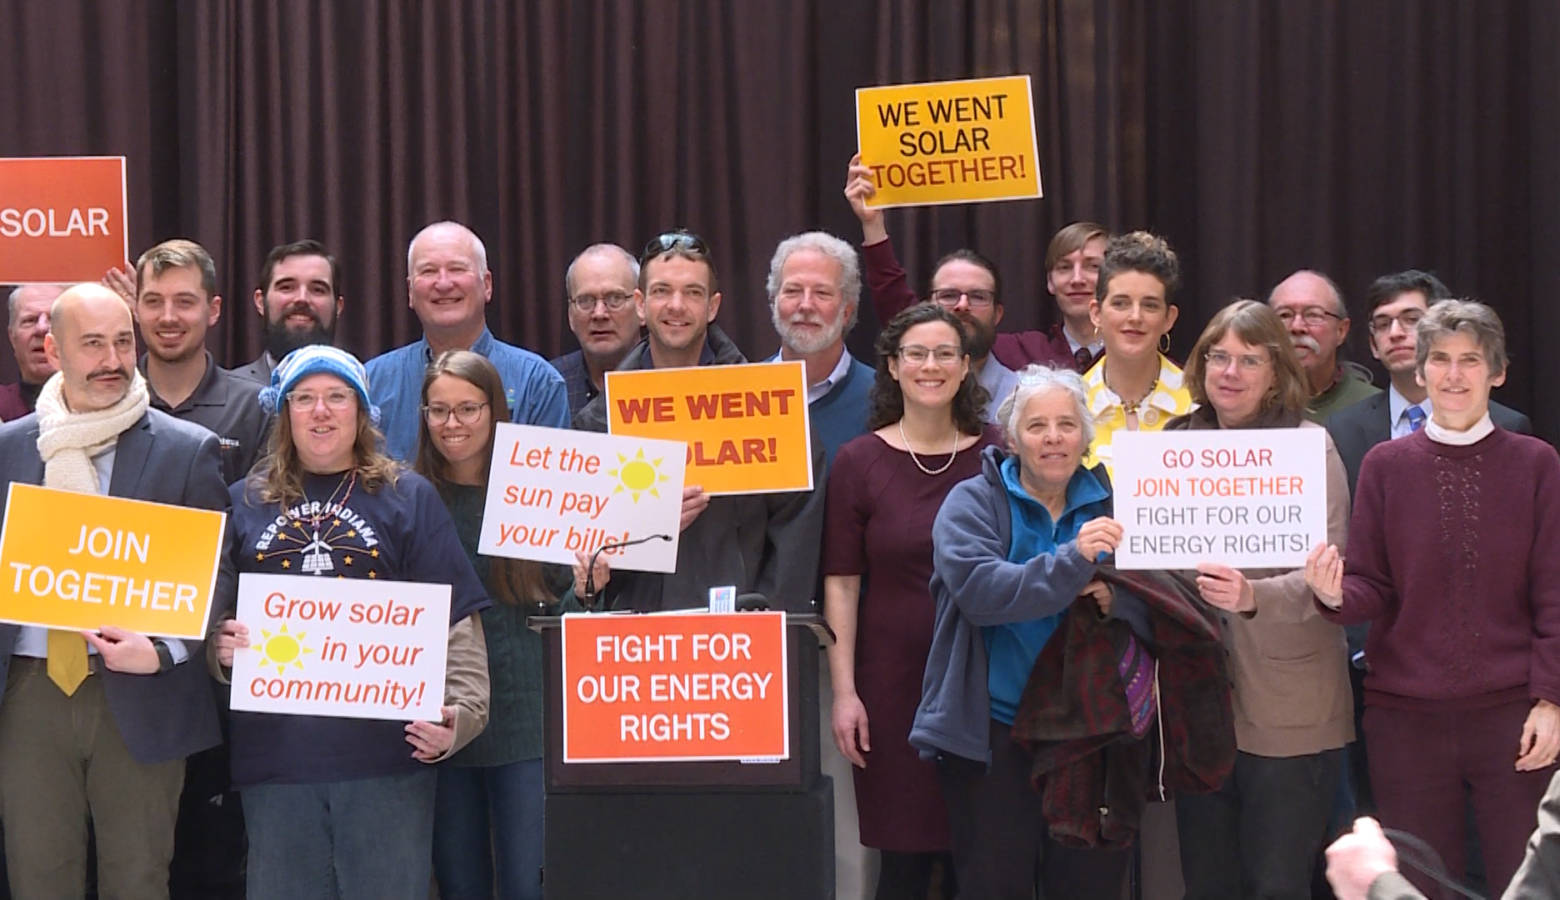 Renewable energy advocates at the 2019 Renewable Energy Day rally. (Rebecca Thiele/IPB News)